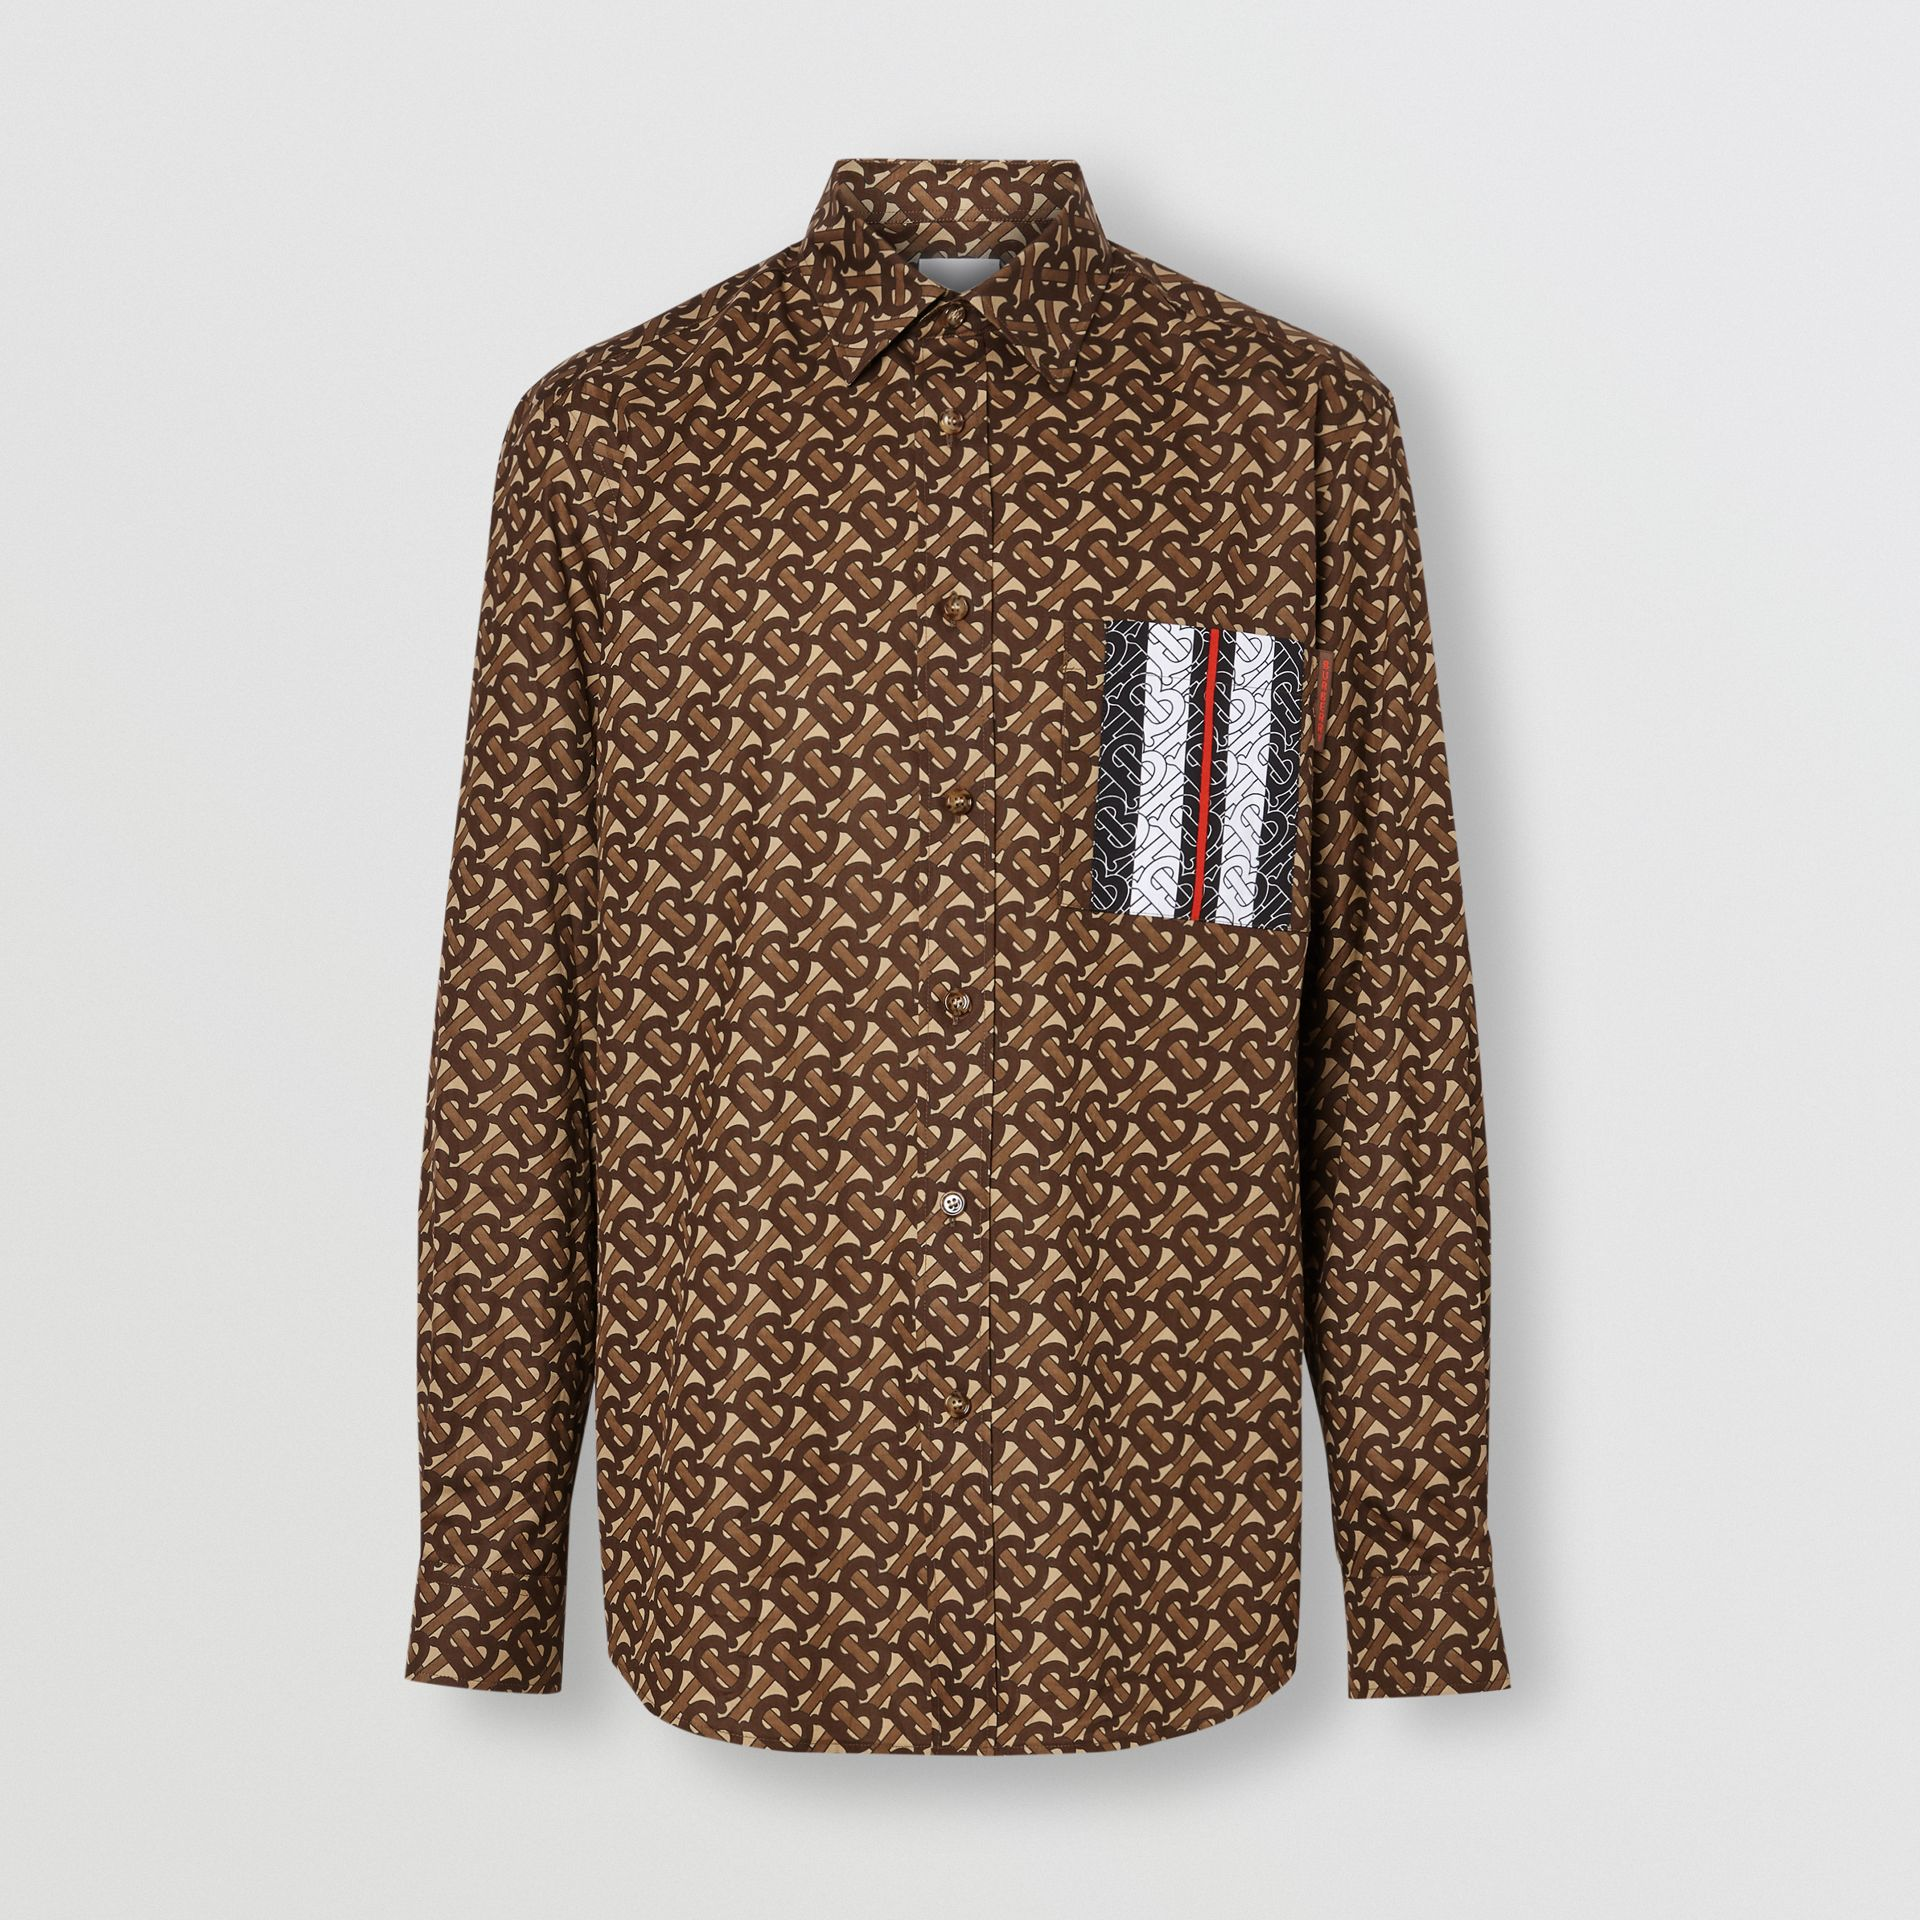 Monogram Stripe Print Cotton Shirt in Bridle Brown - Men | Burberry - gallery image 3